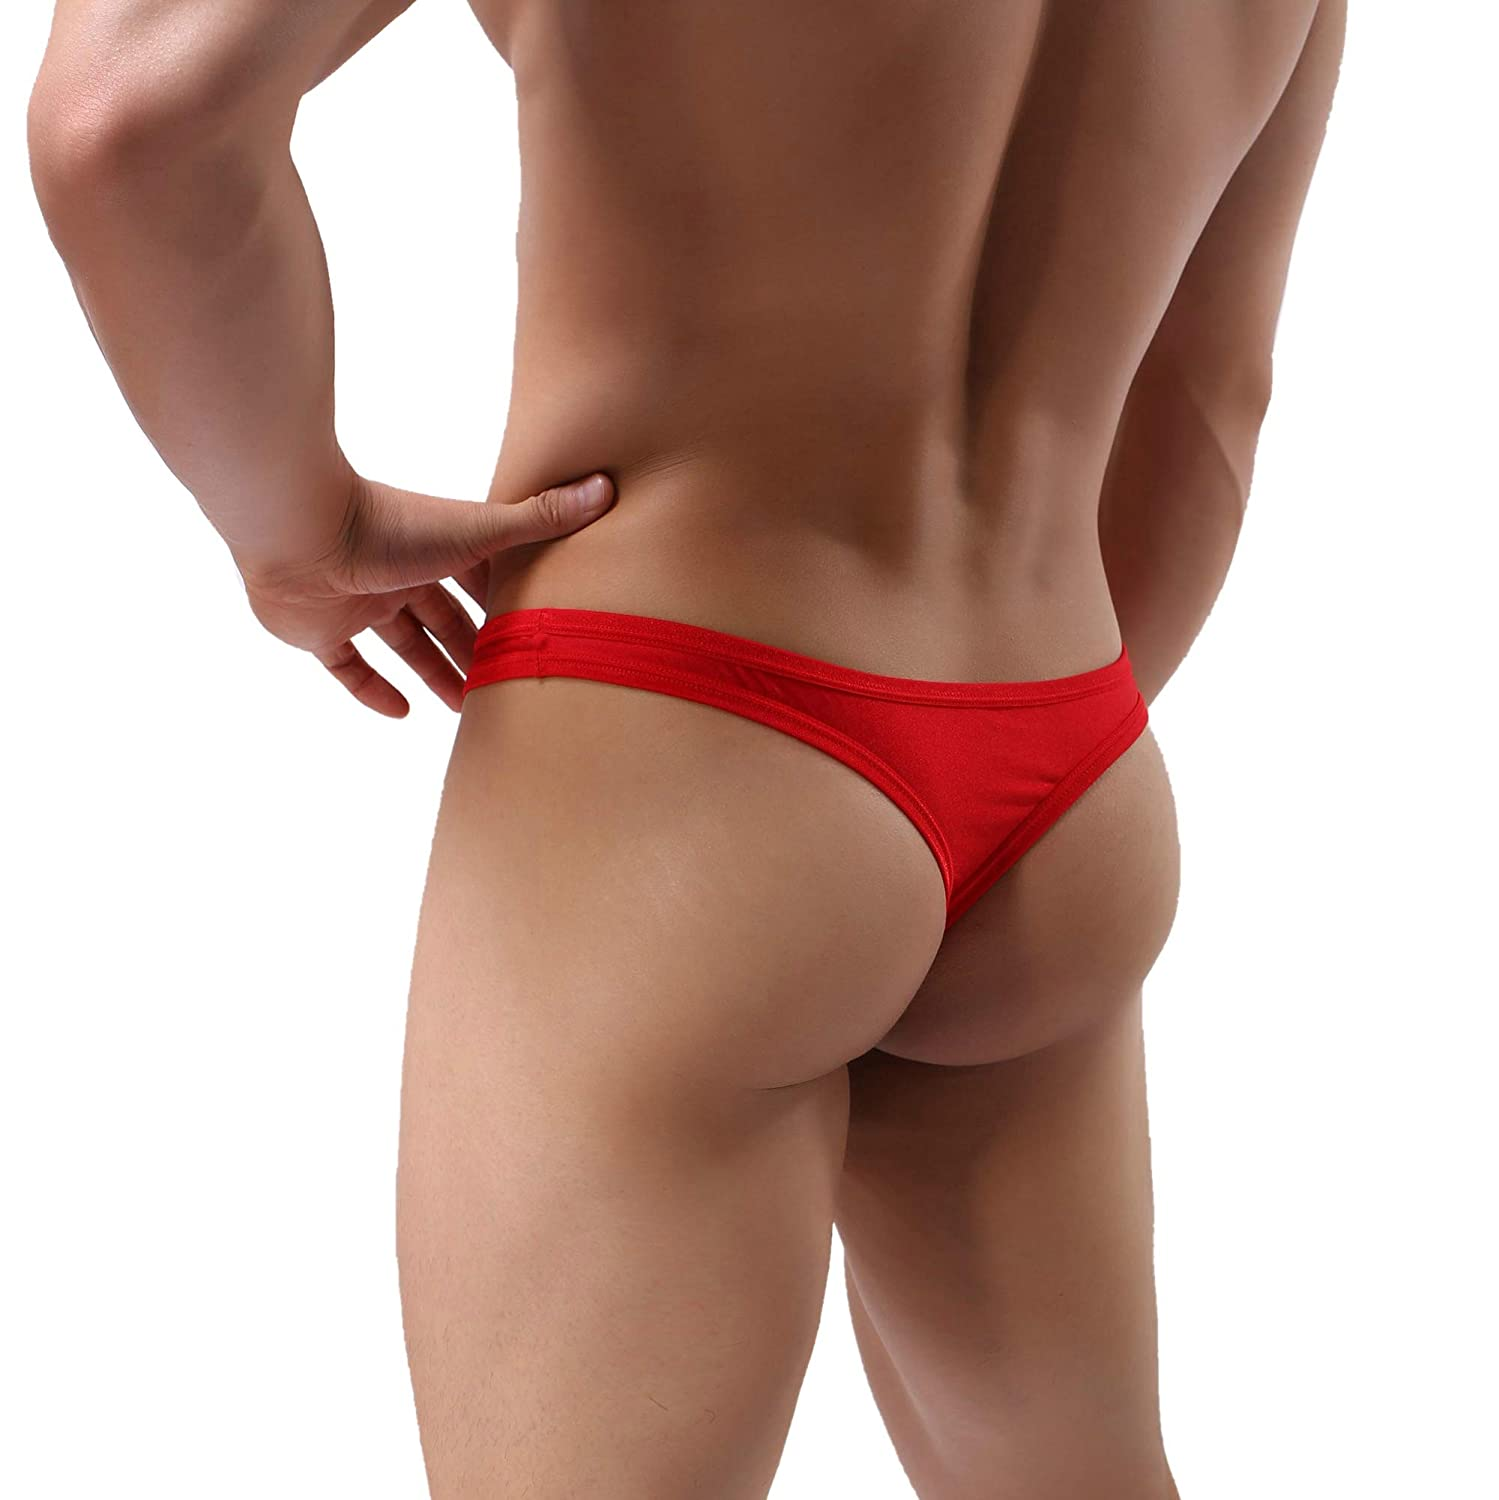 MuscleMate Premium Men's Thong Underwear, No Visible Lines, Men's Thong G-String Underpants